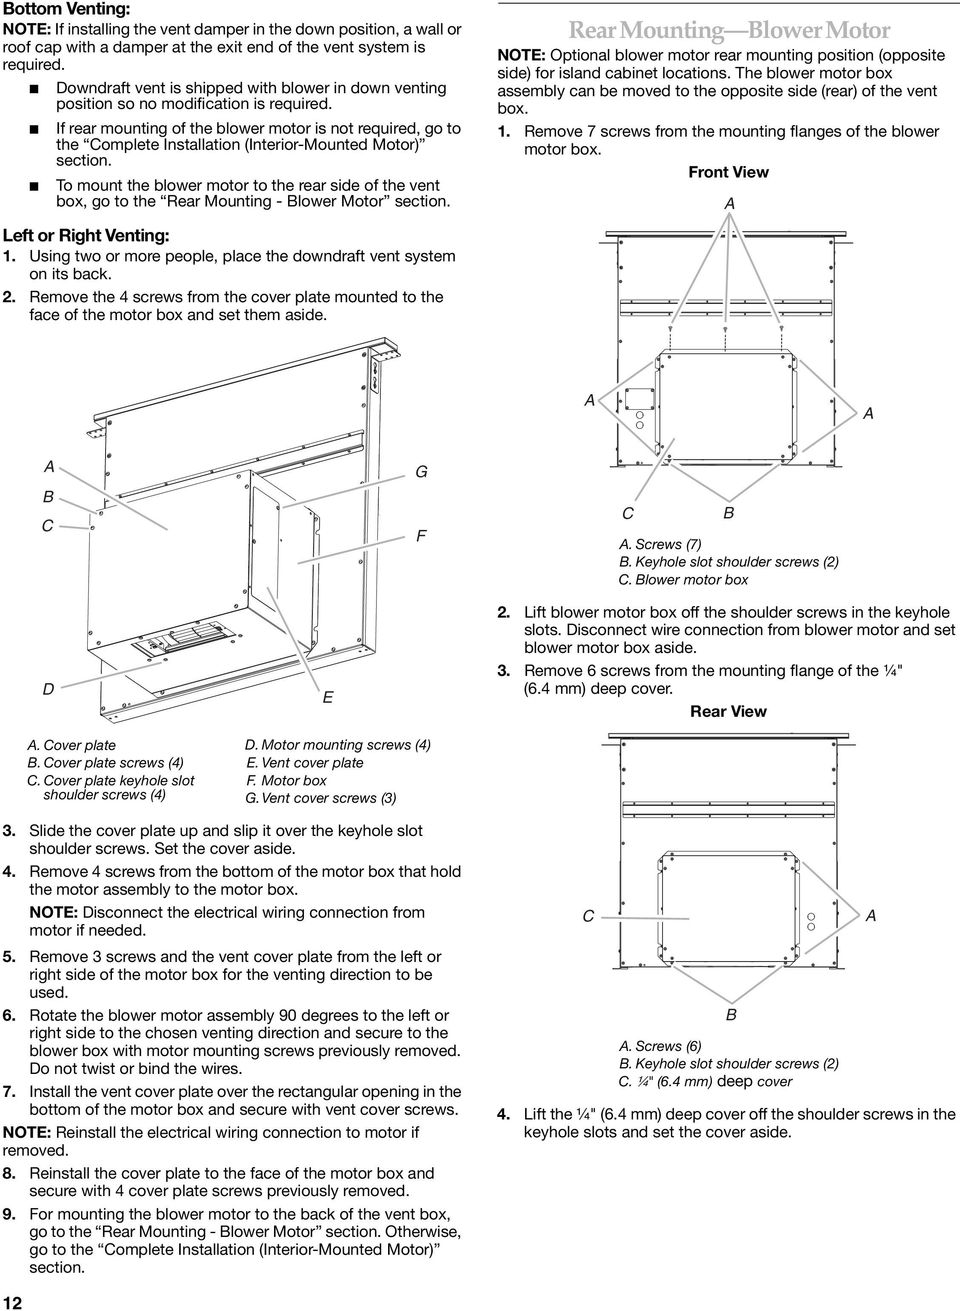 30 762 Cm And 36 914 Retractable Pop Up Downdraft Vent Disconnect Electrical Motor Connection Diagram If Rear Mounting Of The Blower Is Not Required Go To Omplete Installation